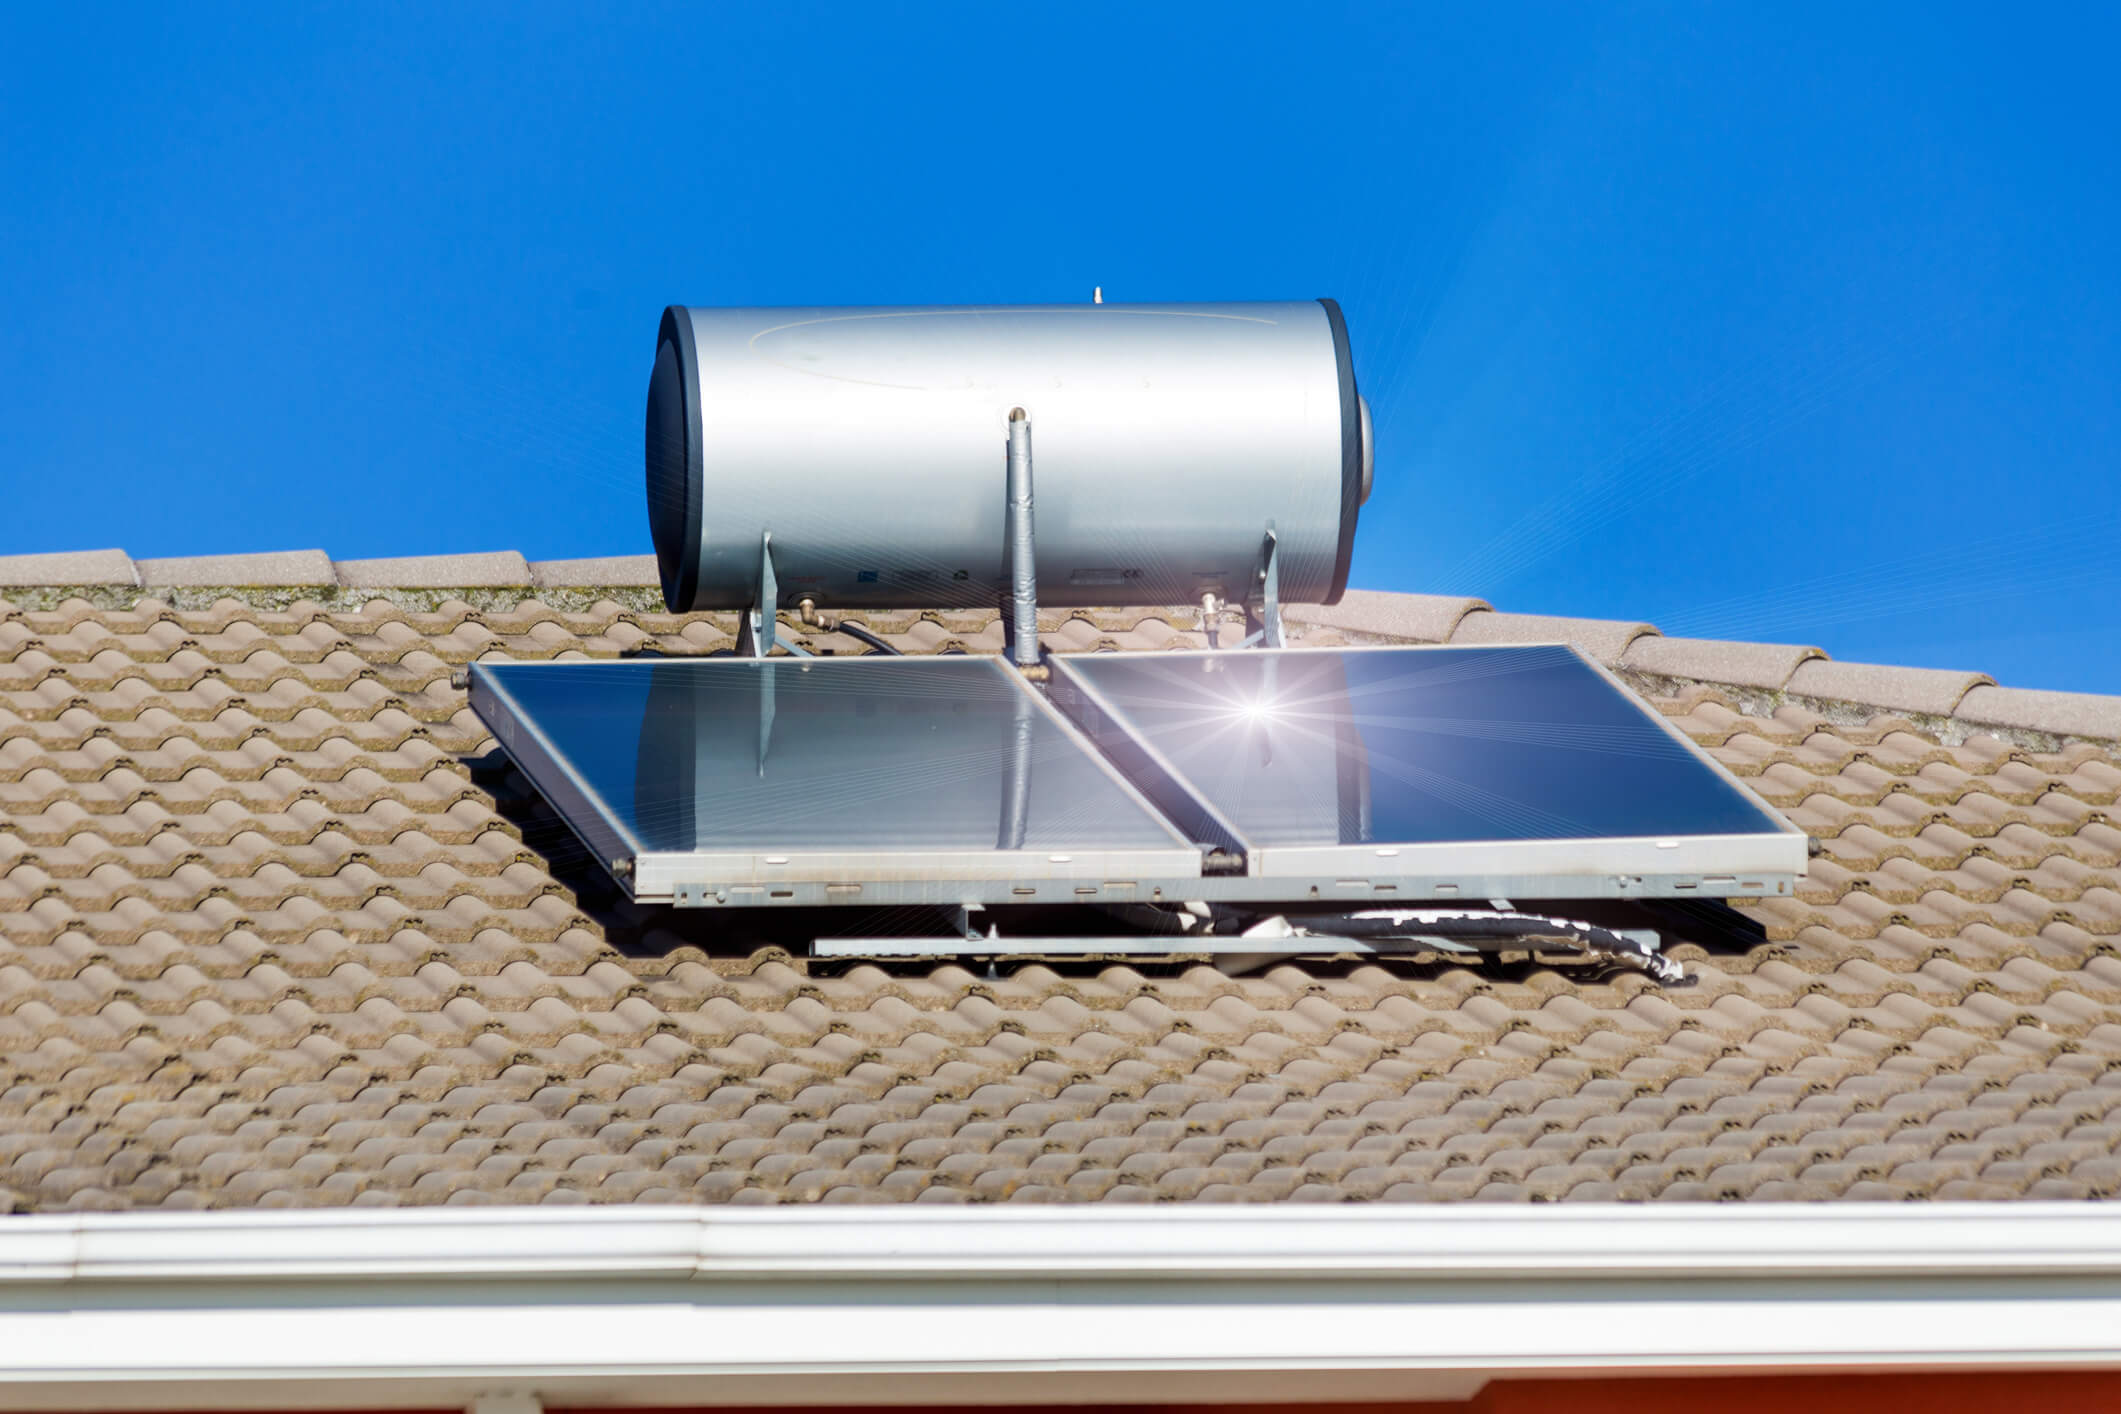 solar powered water heater on roof